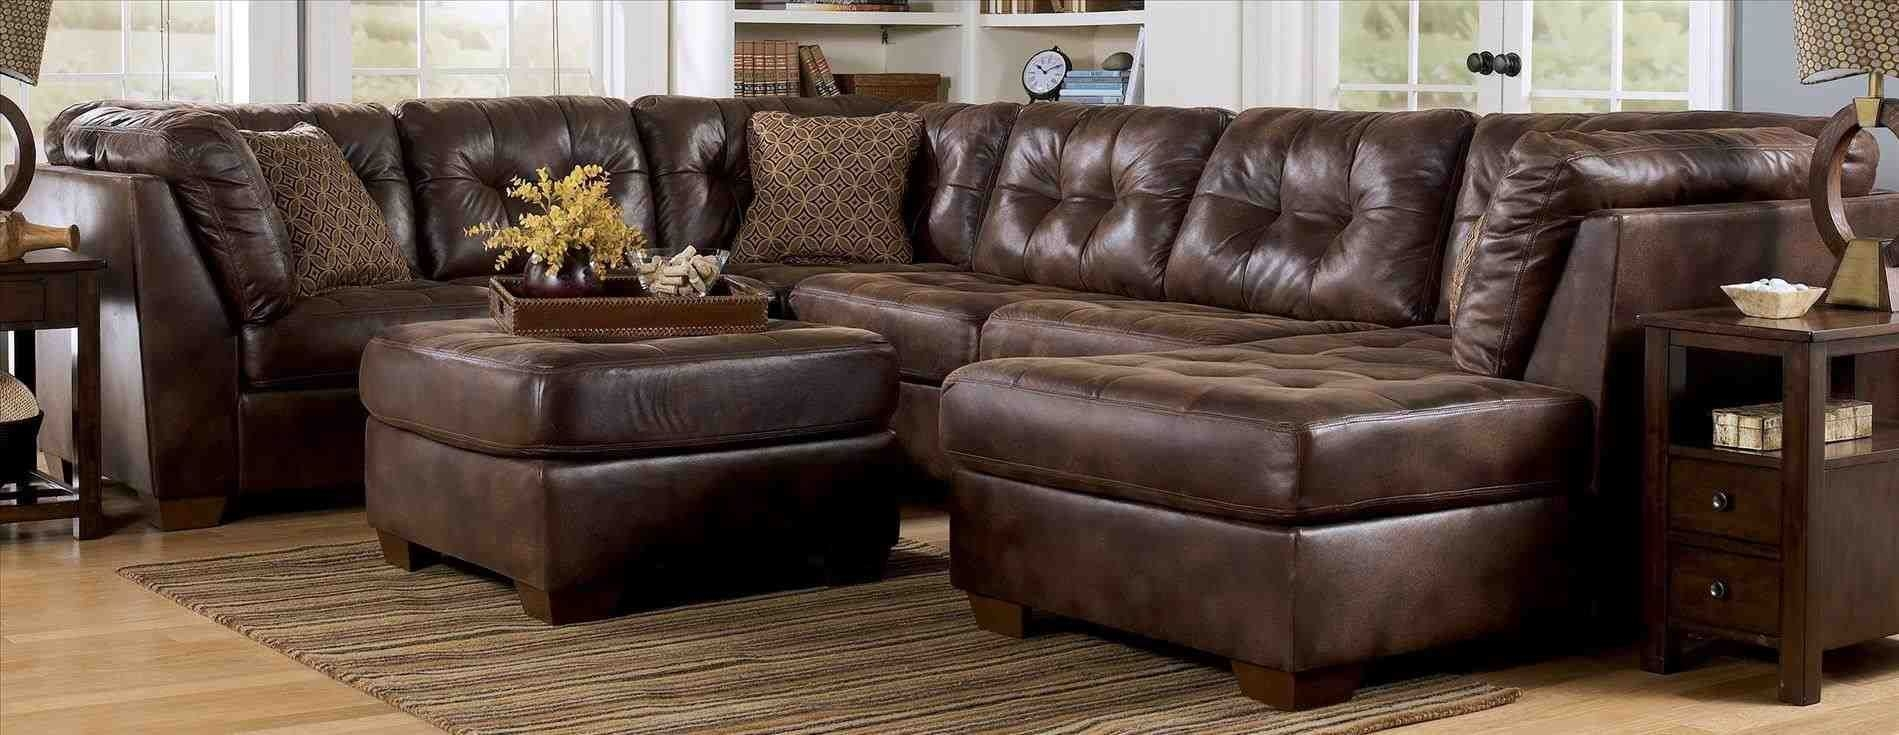 Cheap Sectionals Under 500  Full Size Of Sofasectional Couch 7 Piece Living Room Furniture